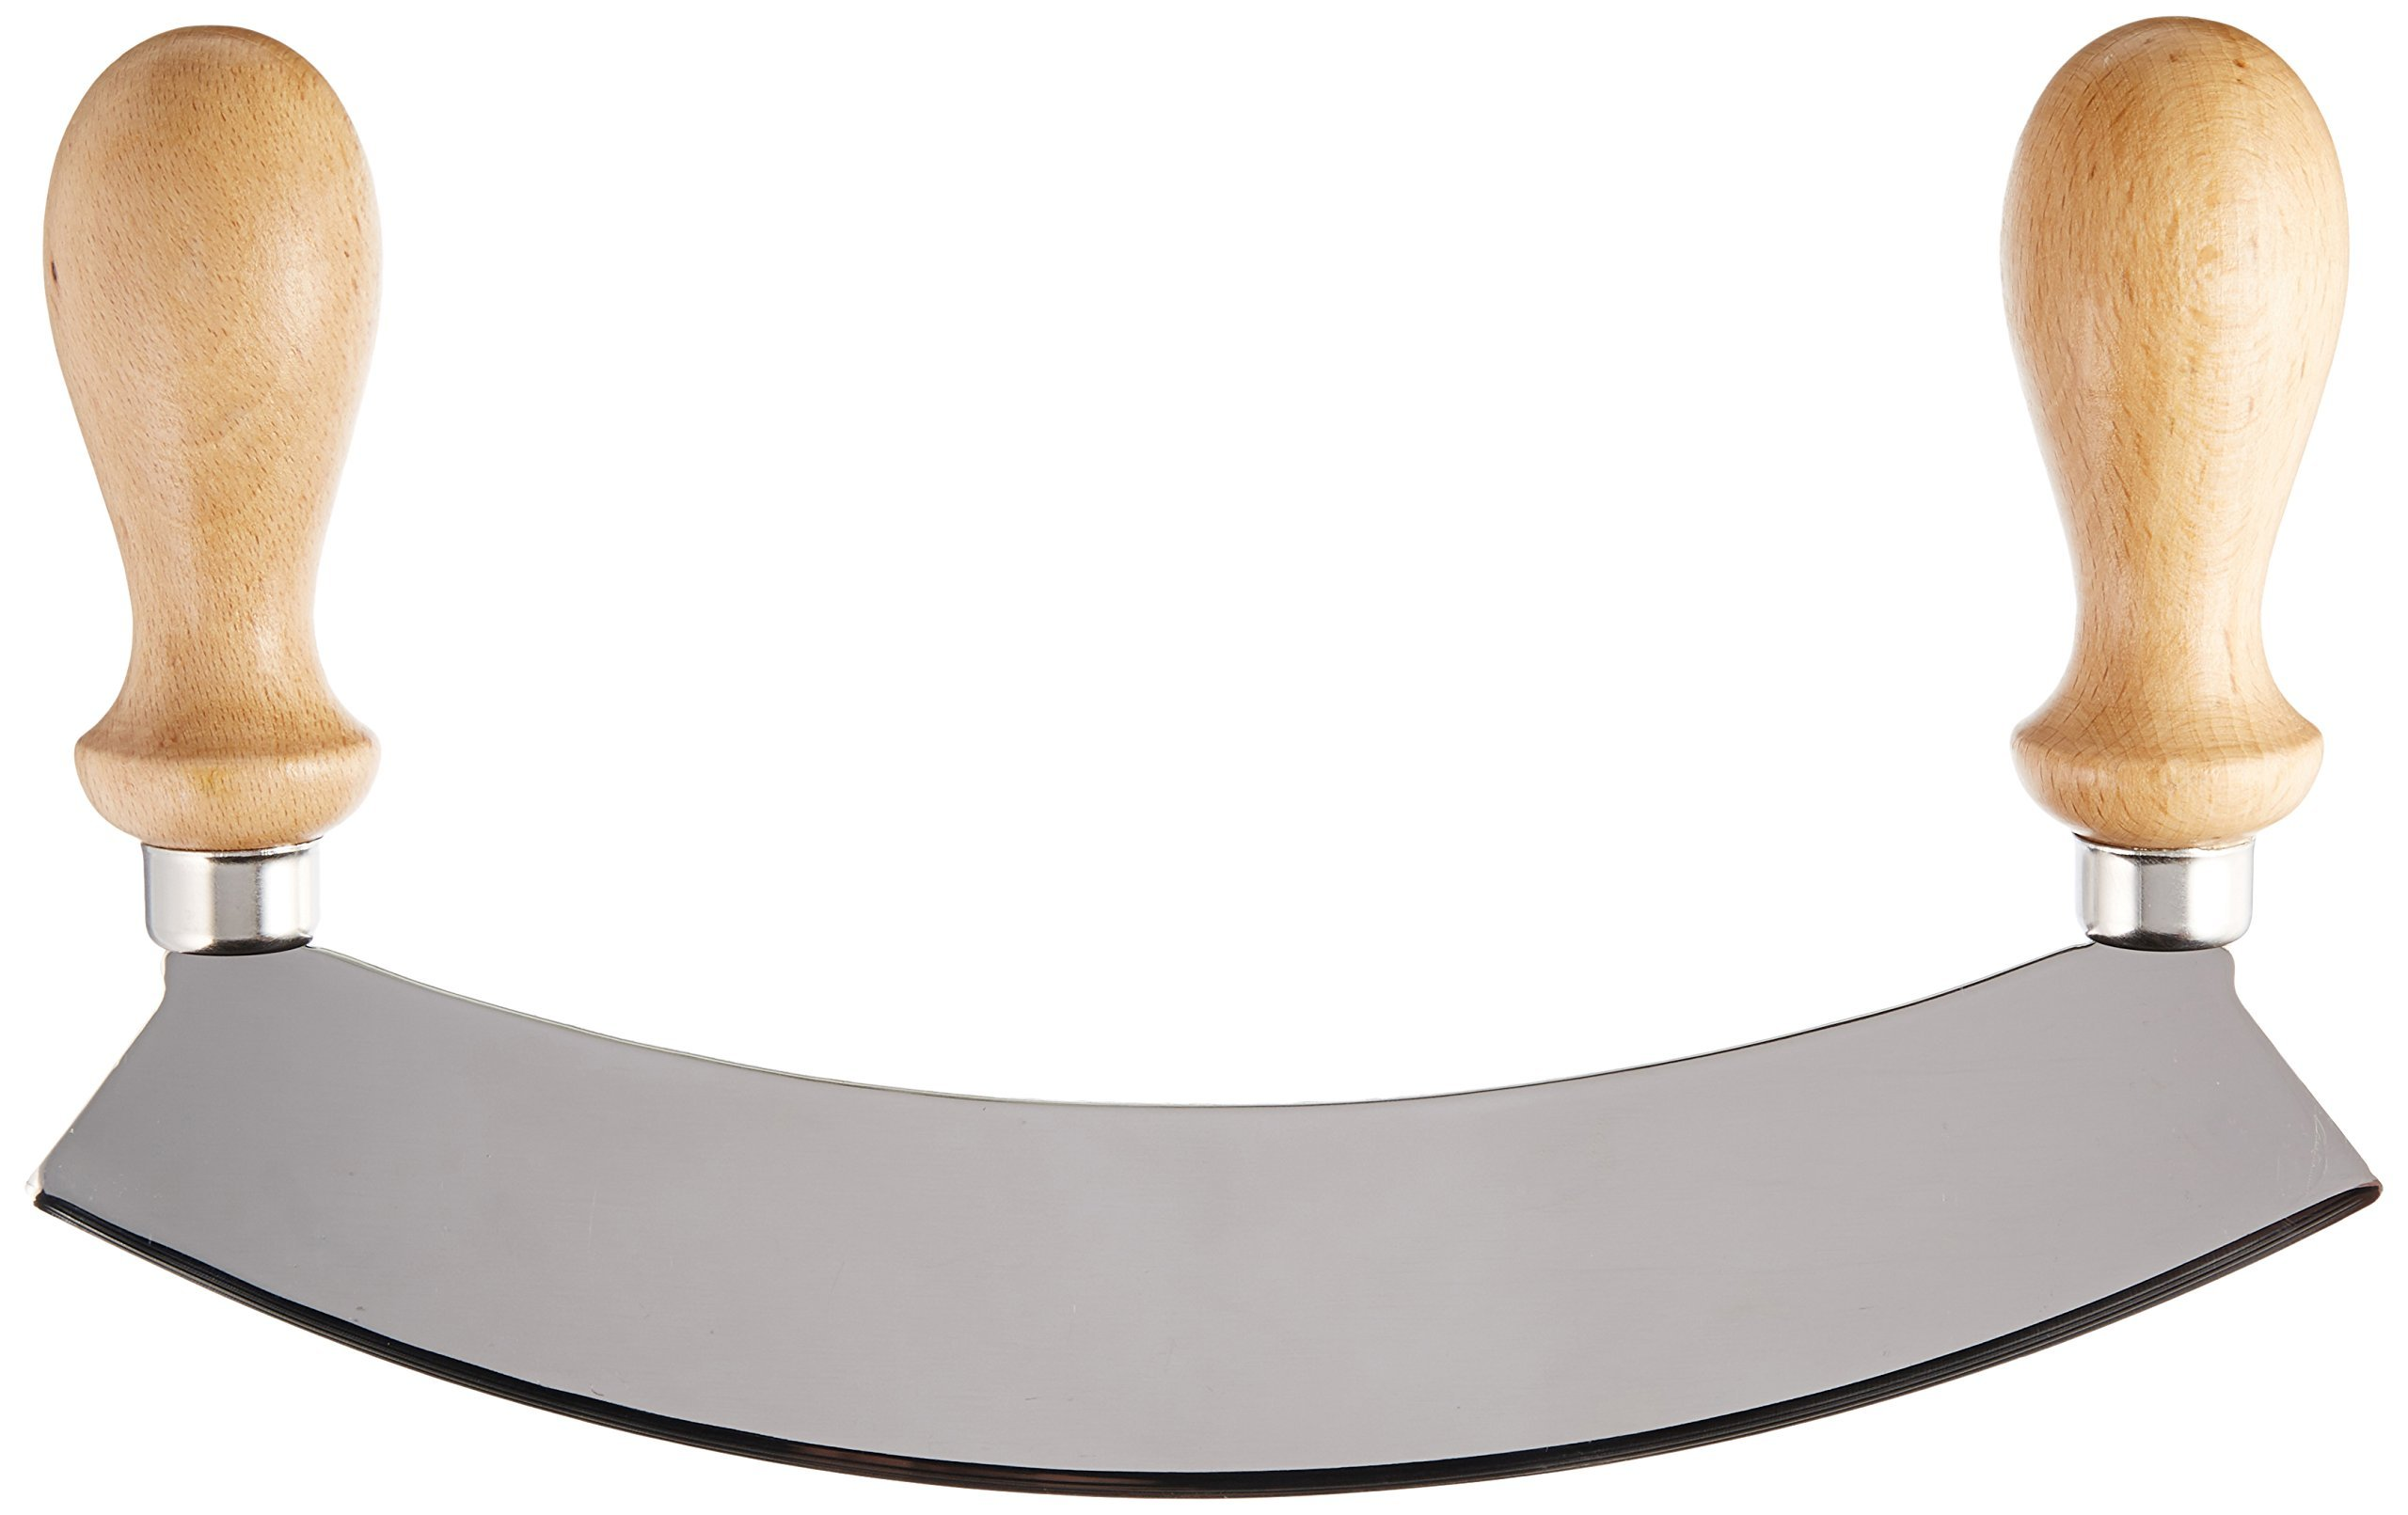 Stainless Steel Rocking Mezzaluna Knife with Wood Handles, 10 Inch by SCI